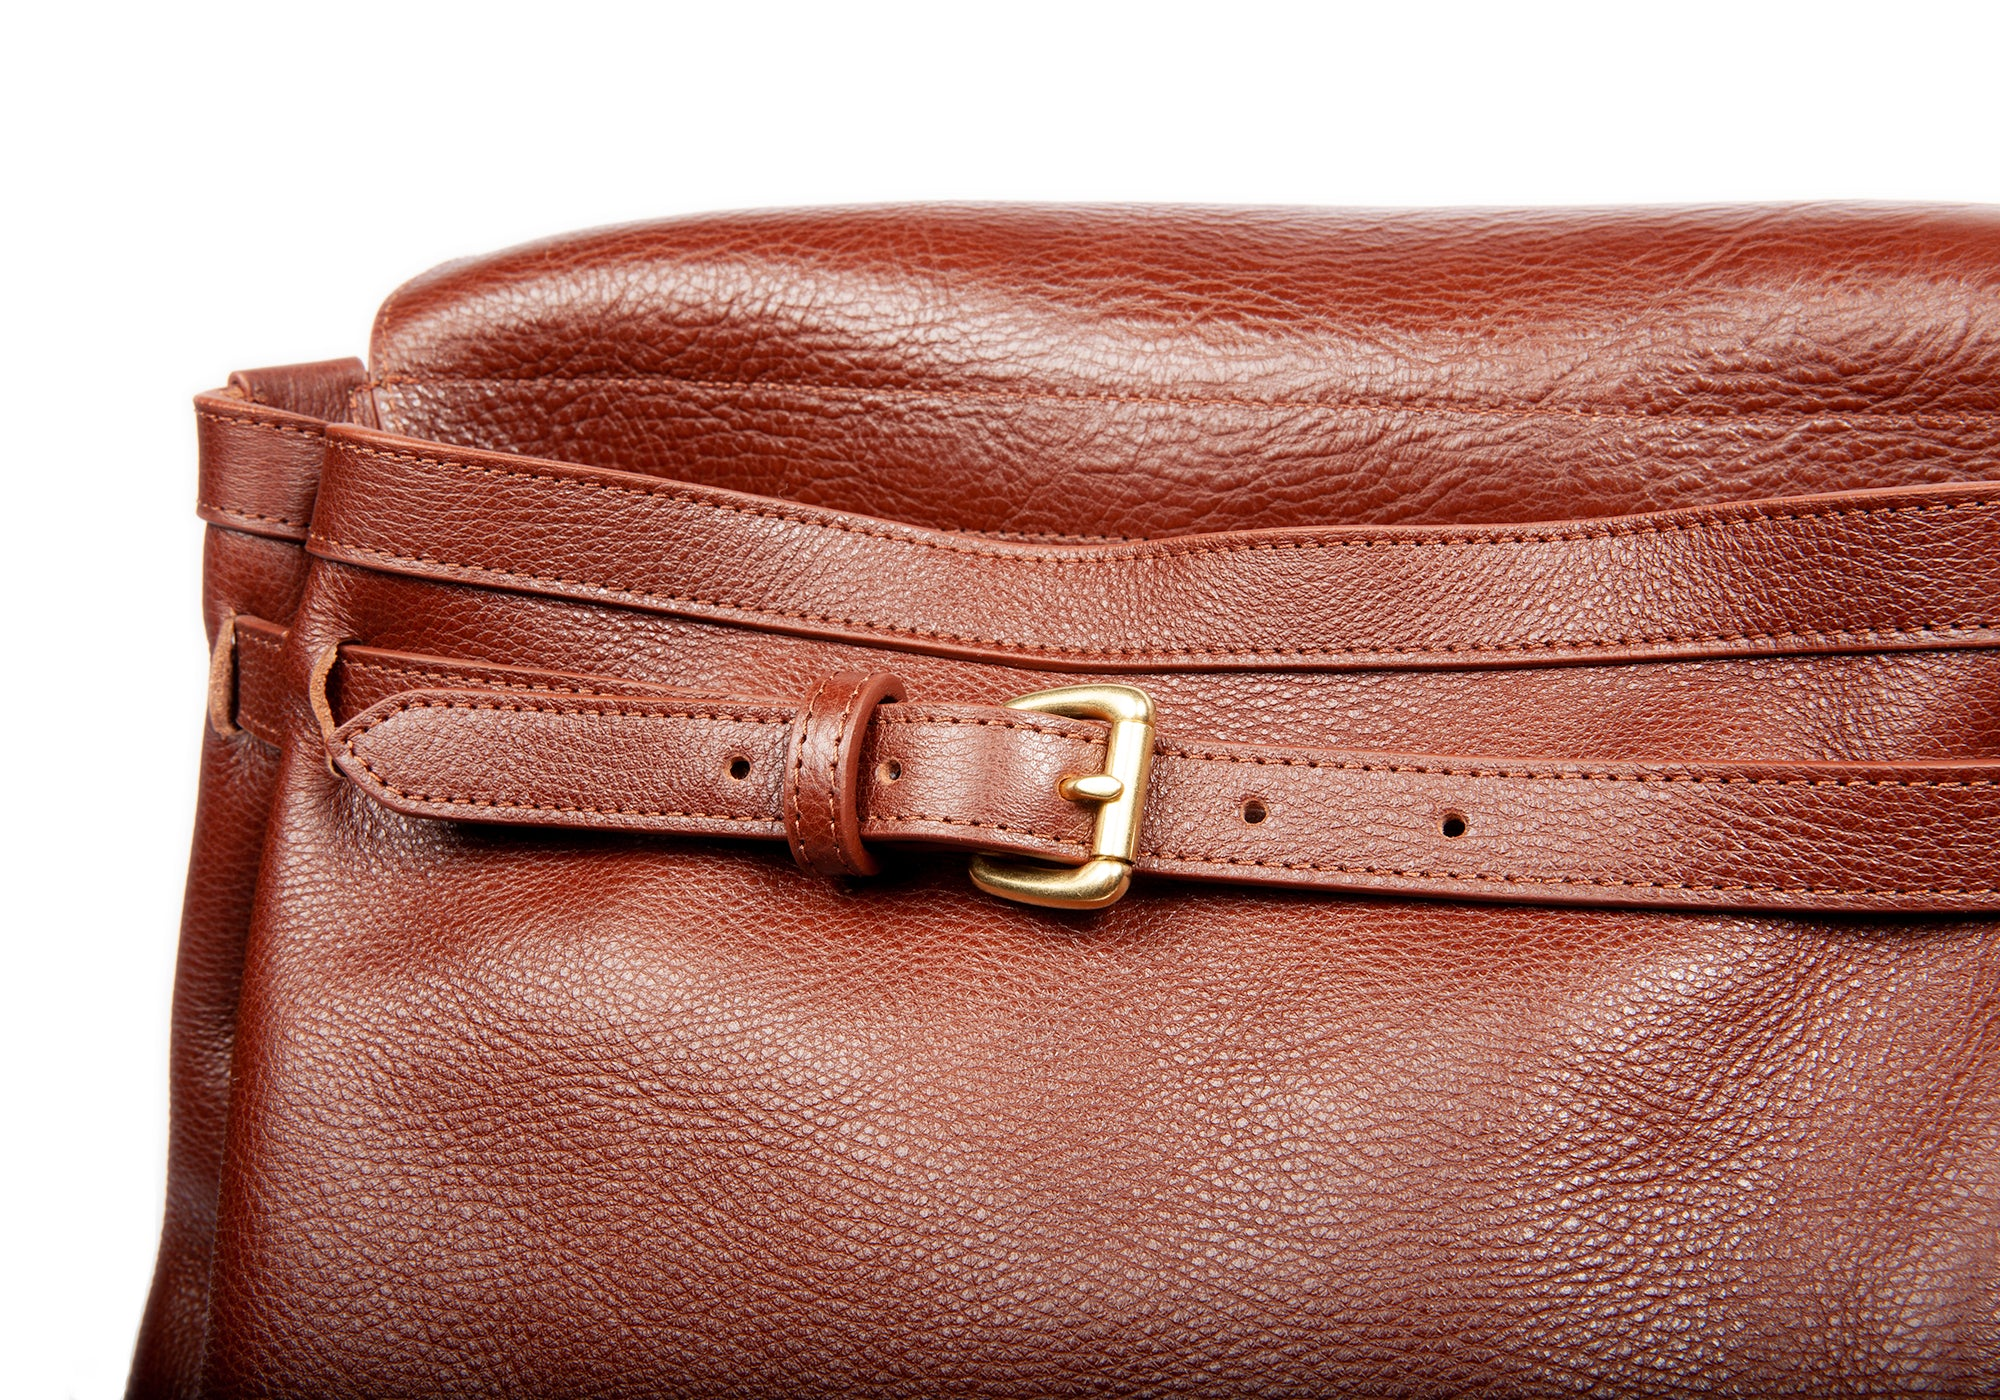 Leather Buckle View of Leather Knapsack Chestnut